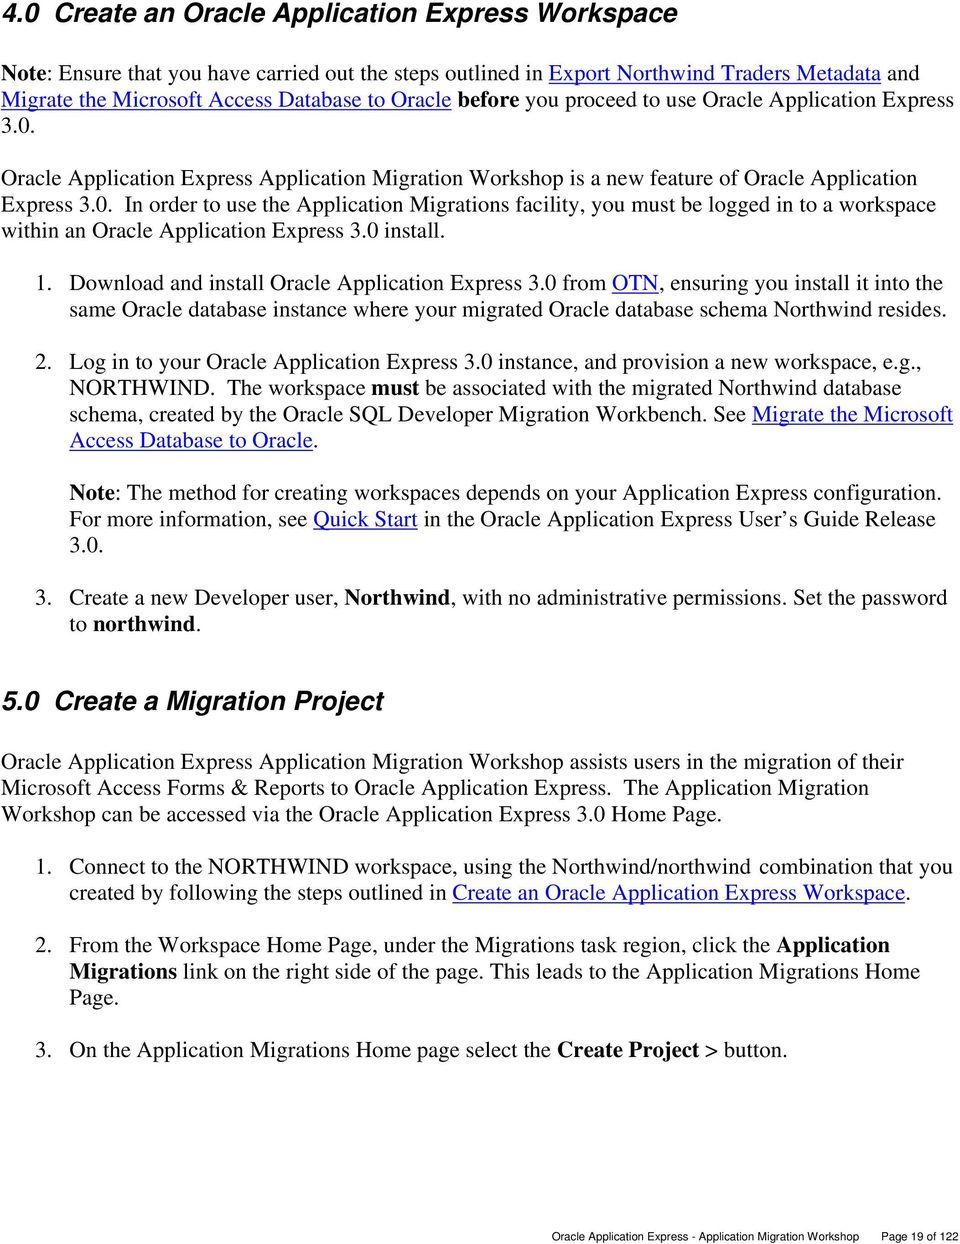 Oracle Application Express - Application Migration Workshop - PDF